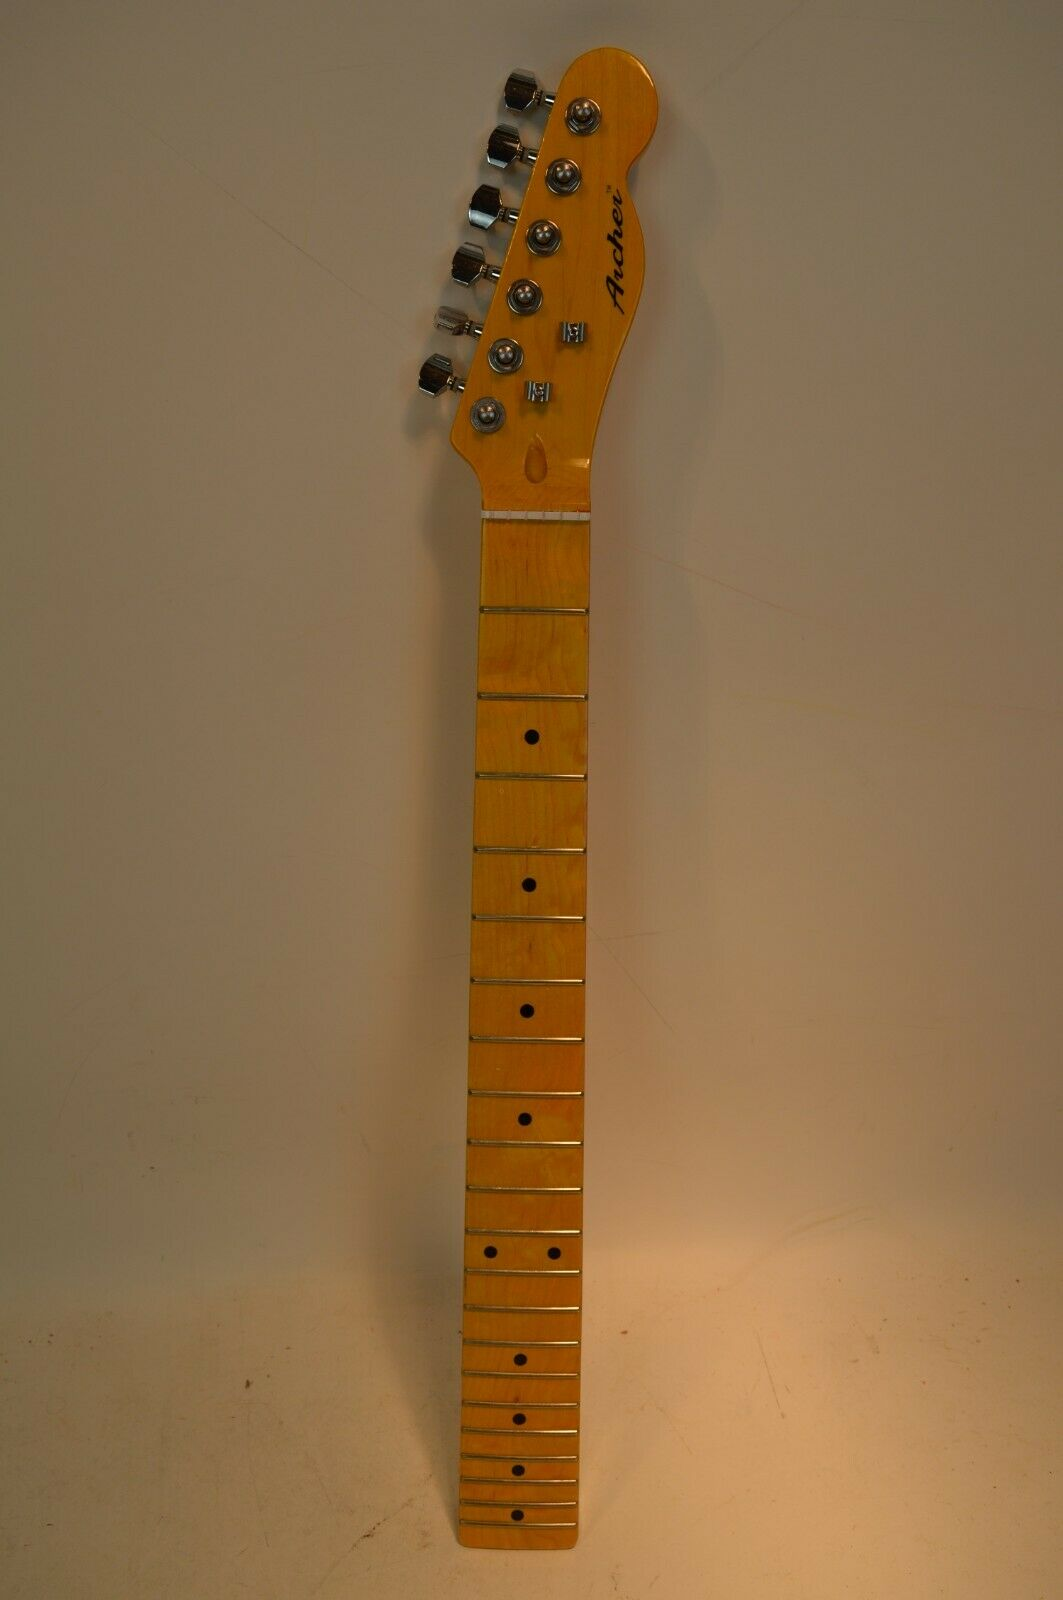 Telecaster Tele Neck Only With Locking Tuners Archer TT10 - $149.00